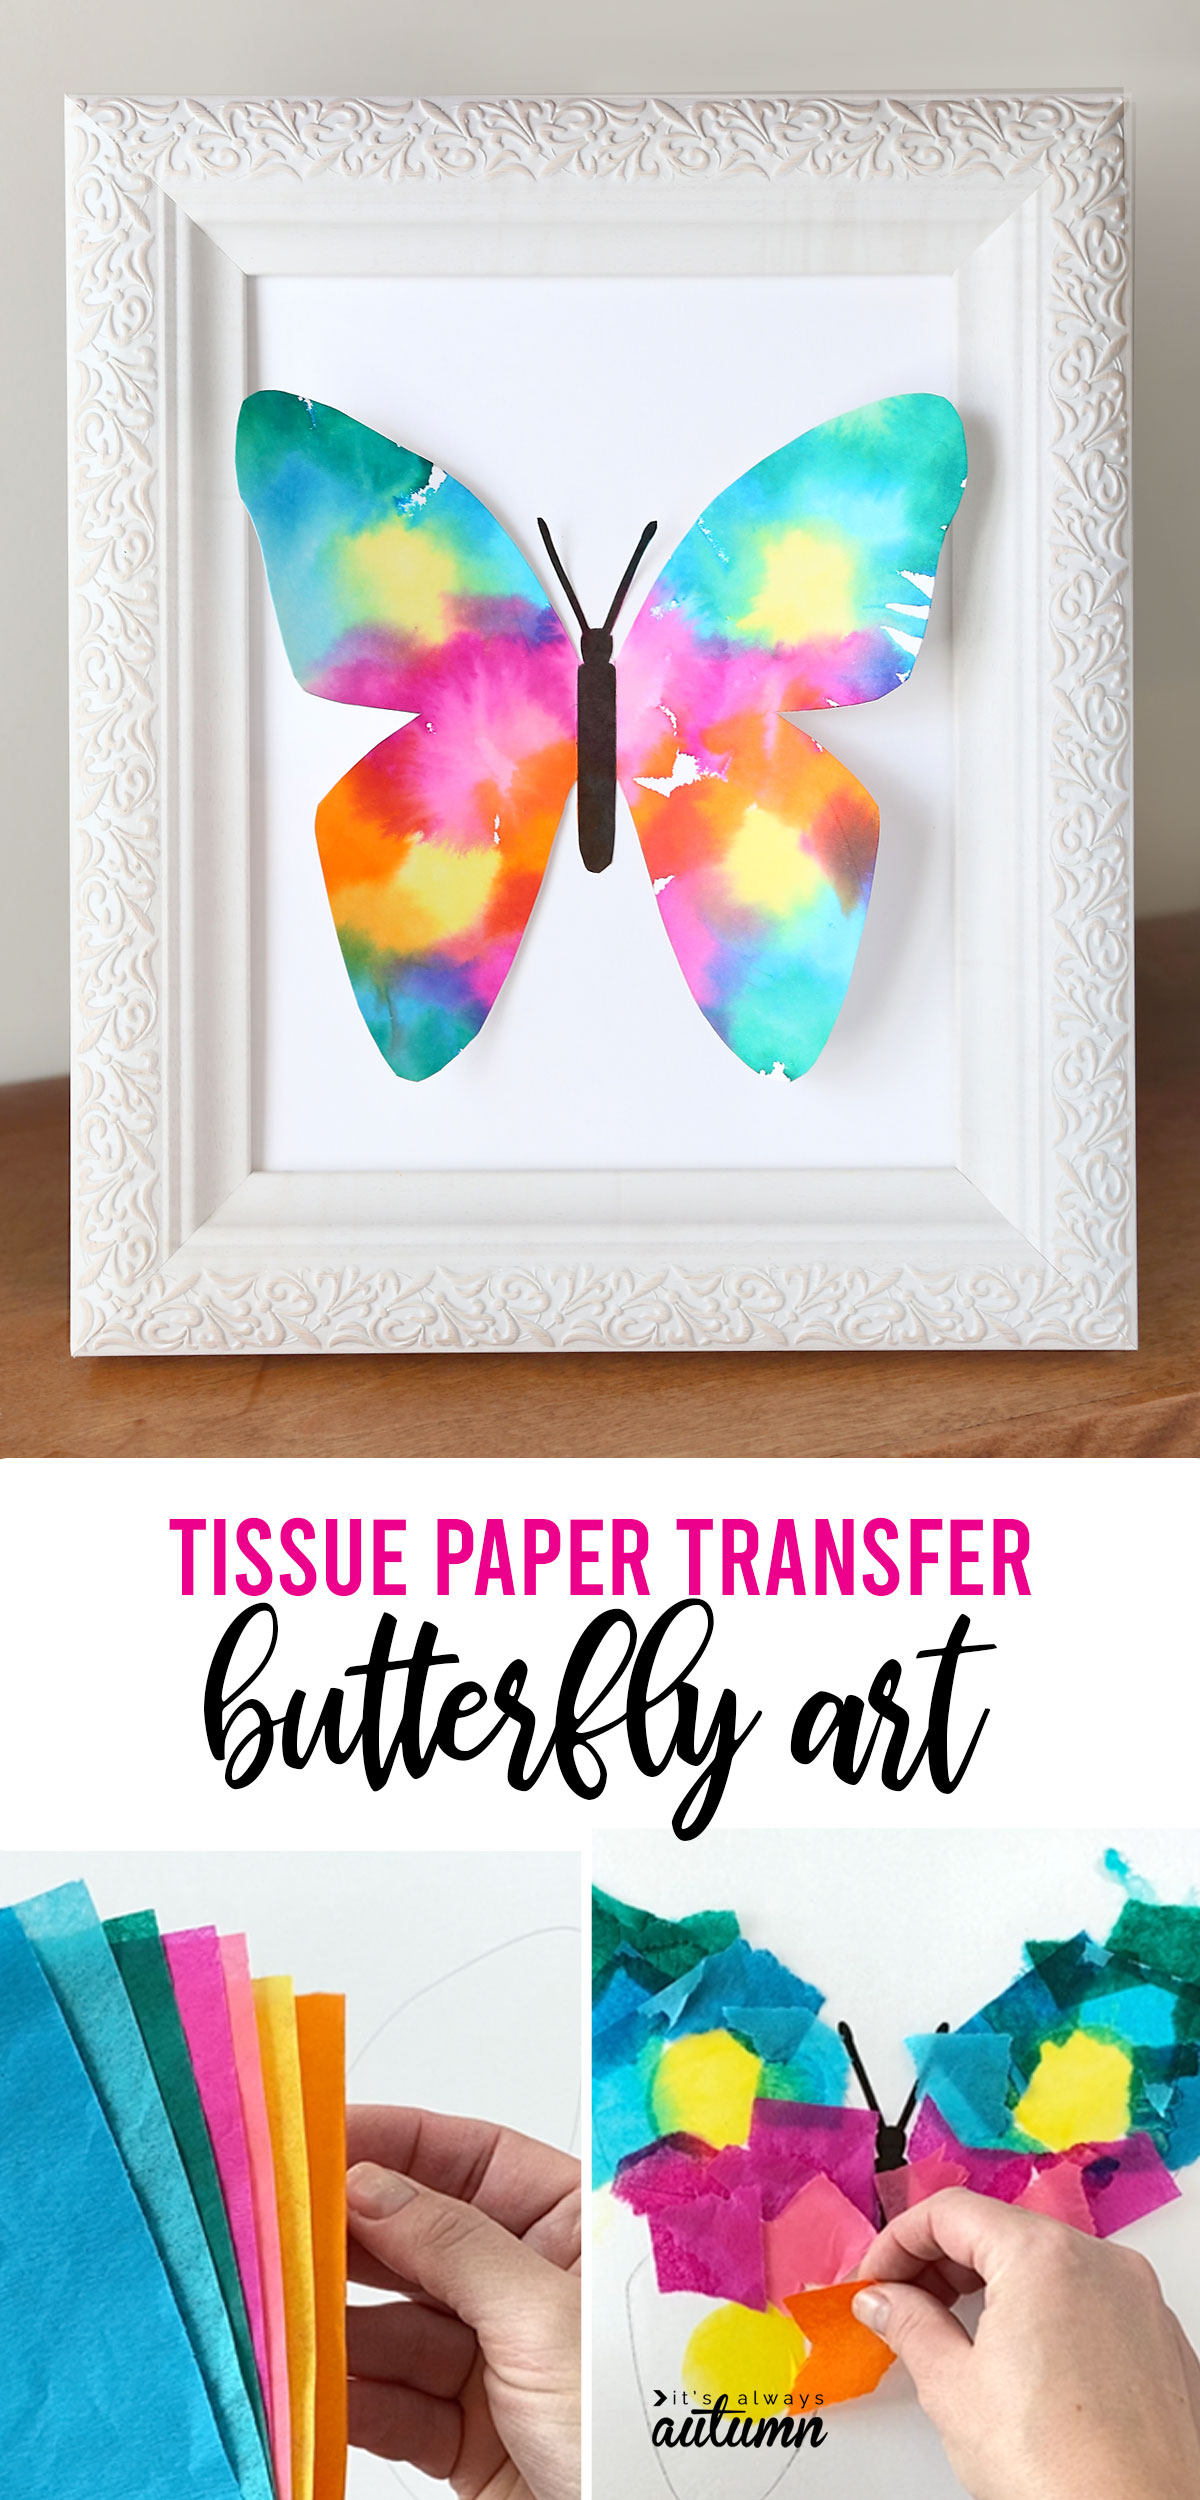 Colorful butterfly made of paper in a white picture frame; hands holding colorful tissue paper; hands placing squares of tissue paper on butterfly outline